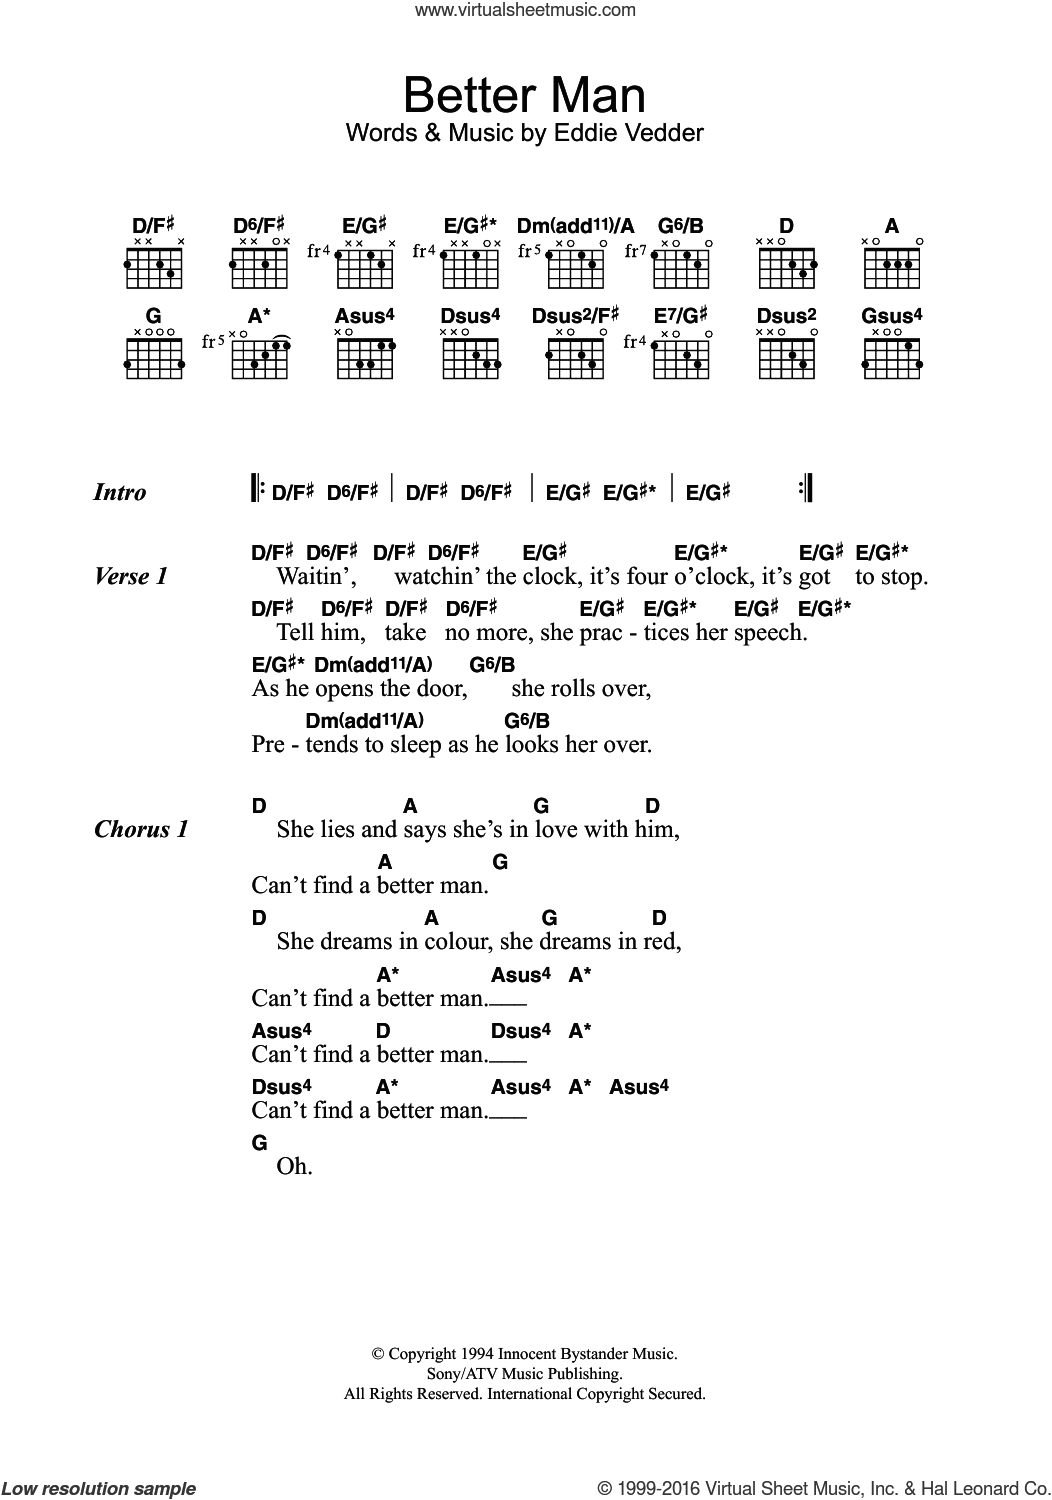 Jam better man sheet music for guitar chords better man sheet music for guitar chords by pearl jam and eddie vedder hexwebz Choice Image